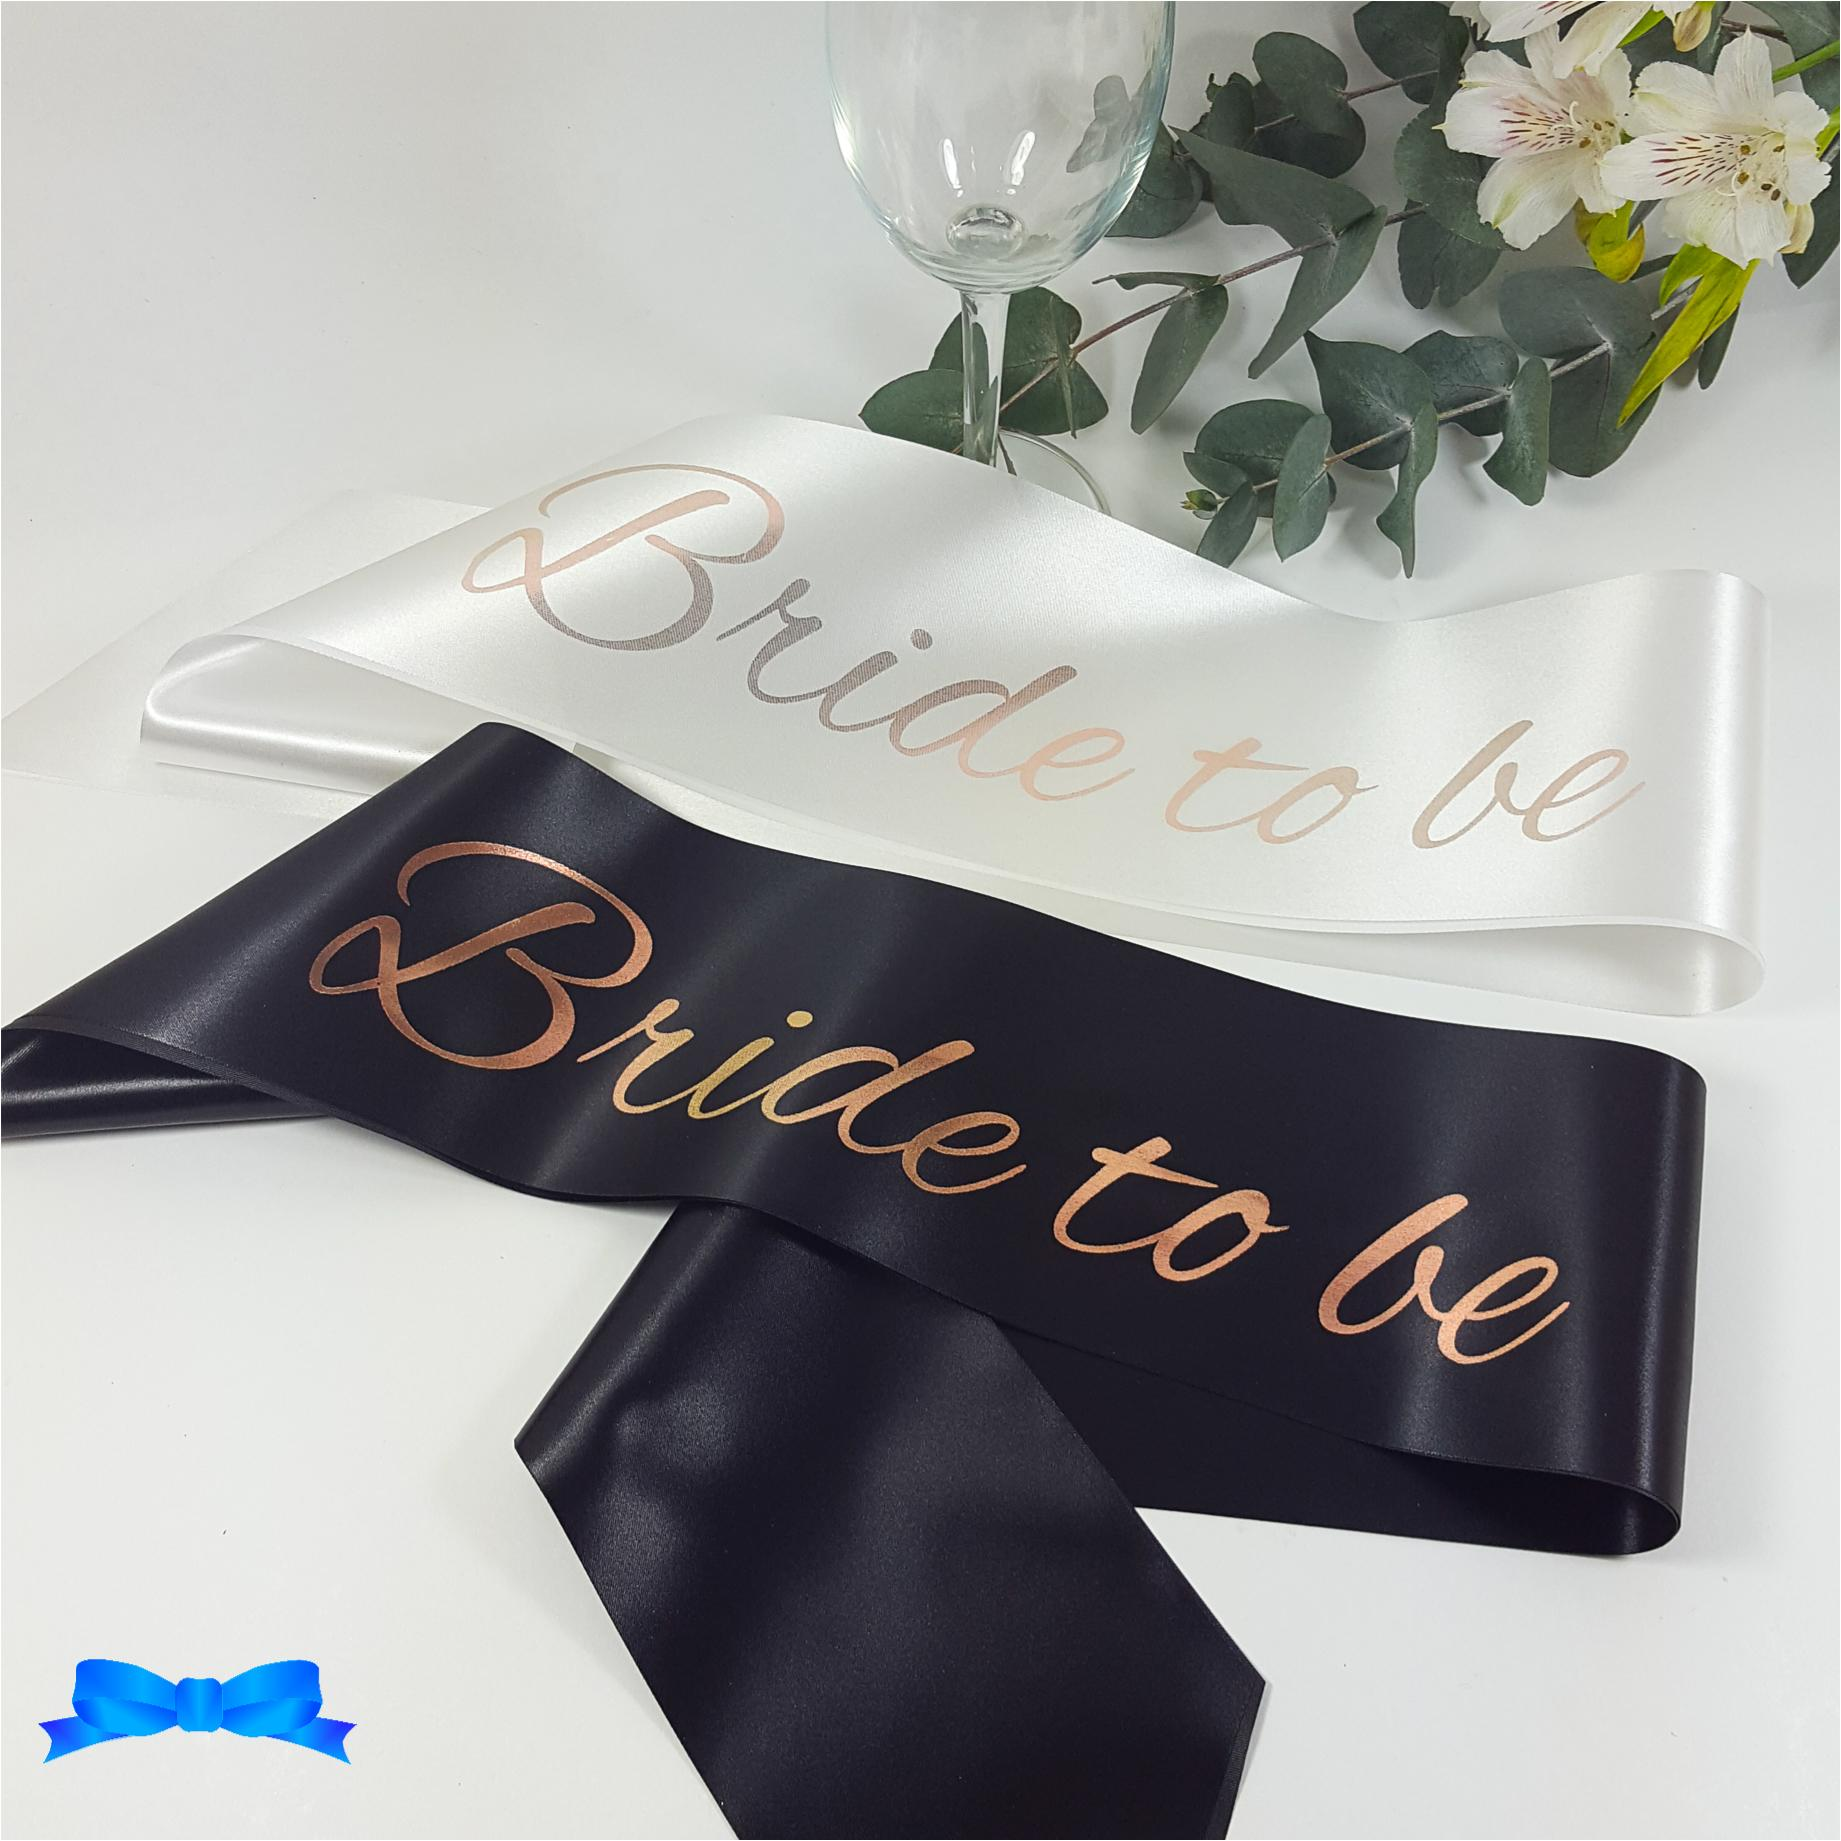 Black and white bride to be sash with rose gold print